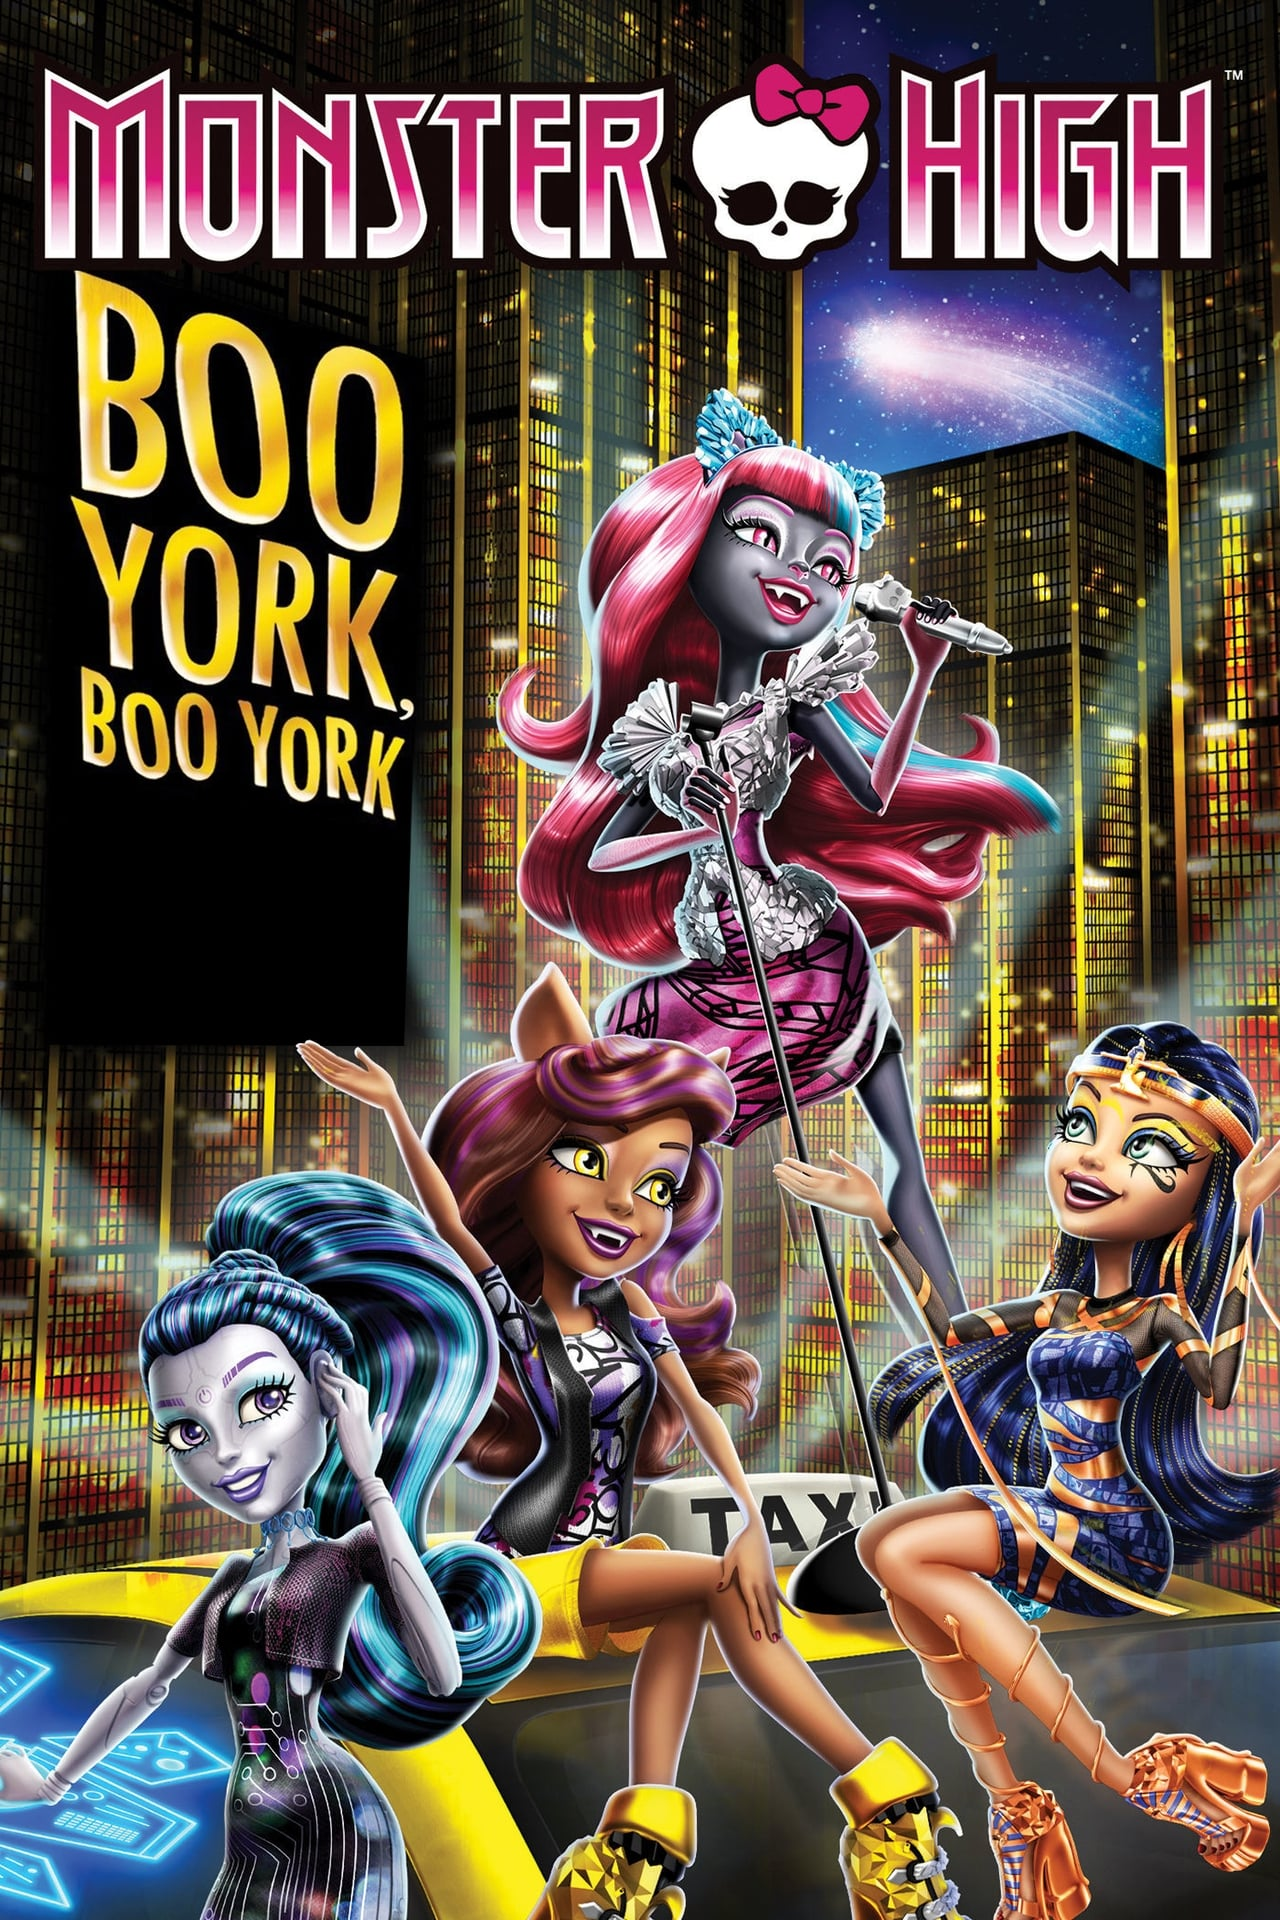 Monster high ghouls sports review betting super bowl betting nj